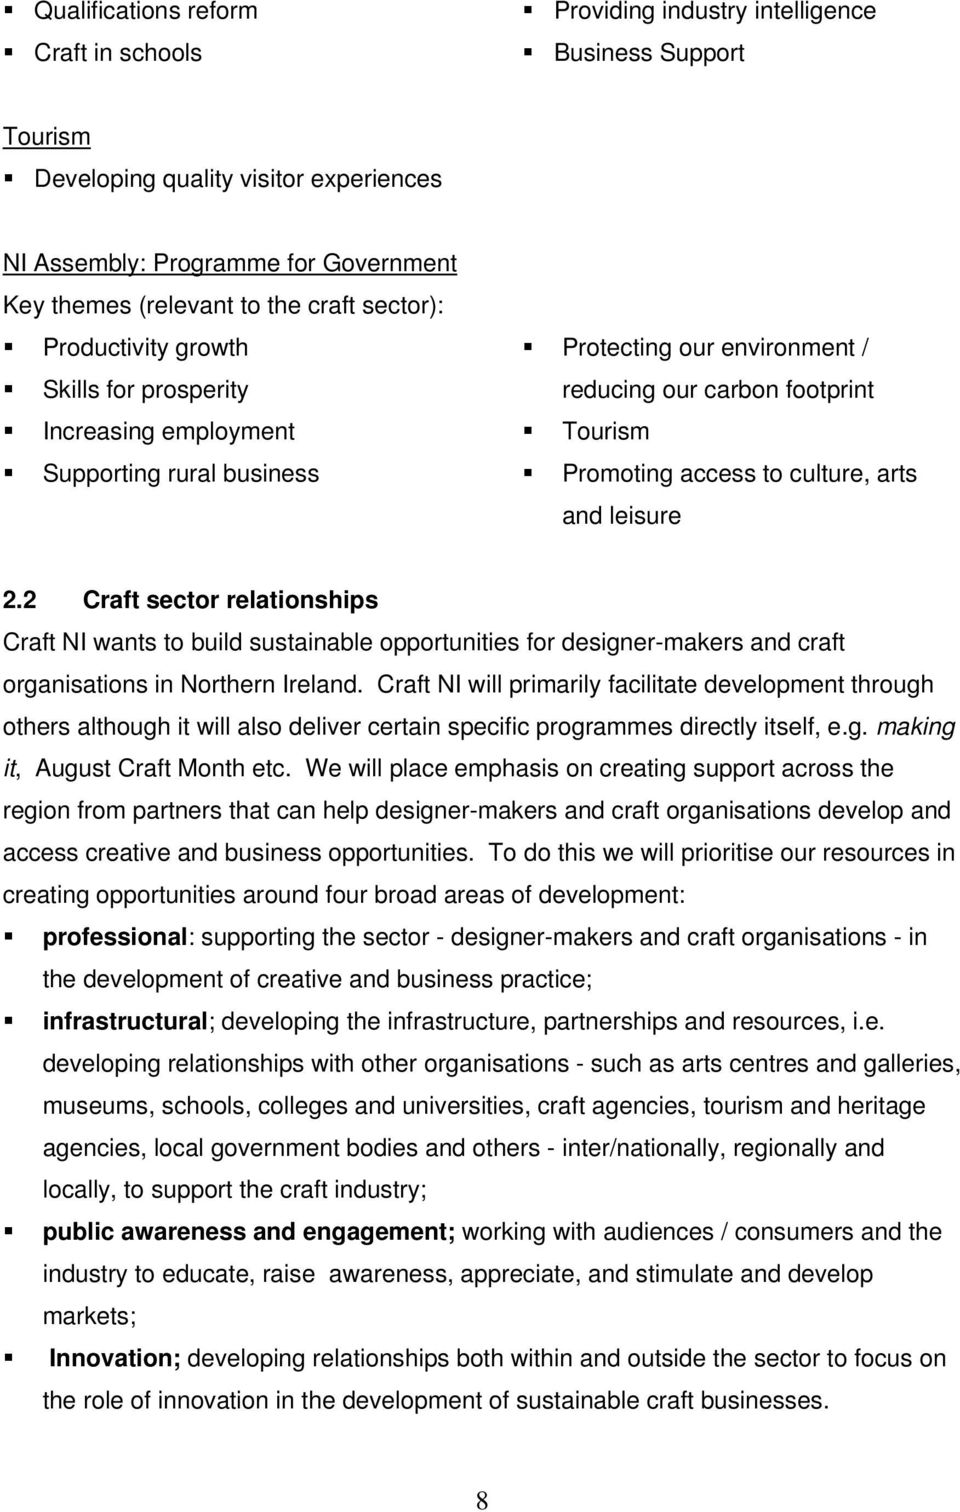 culture, arts and leisure 2.2 Craft sector relationships Craft NI wants to build sustainable opportunities for designer-makers and craft organisations in Northern Ireland.